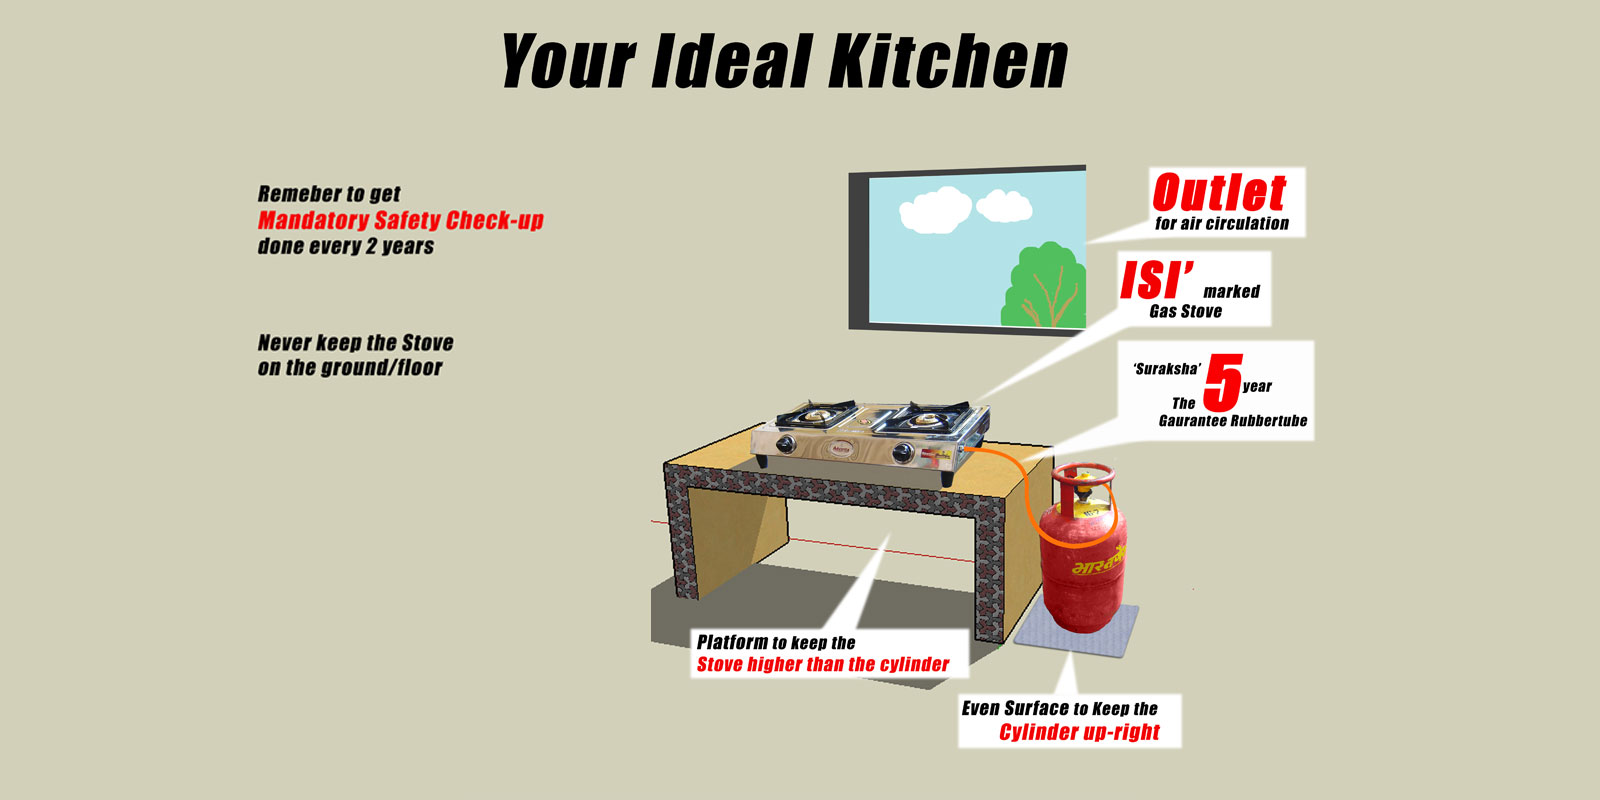 Ideal Kitchen, as per the advice from Bharatgas